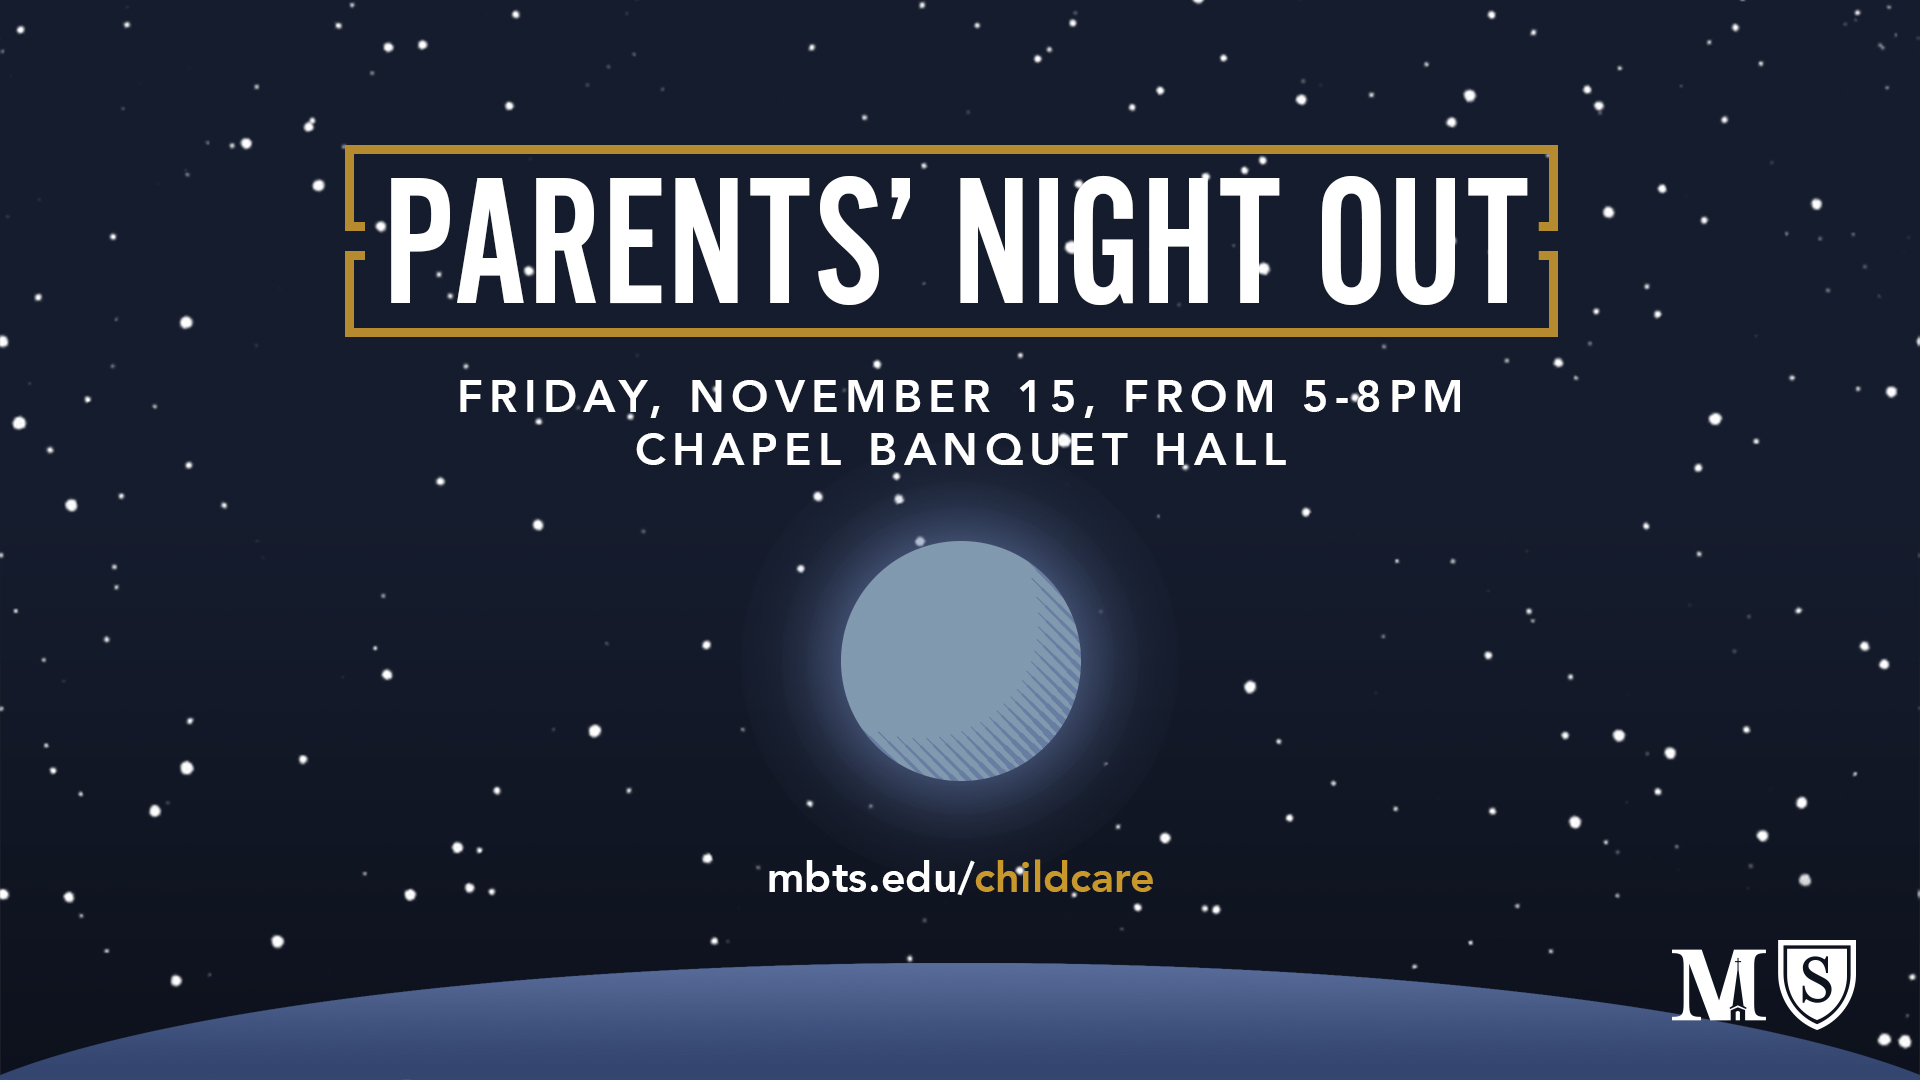 Parents' Night Out - Nov. 15